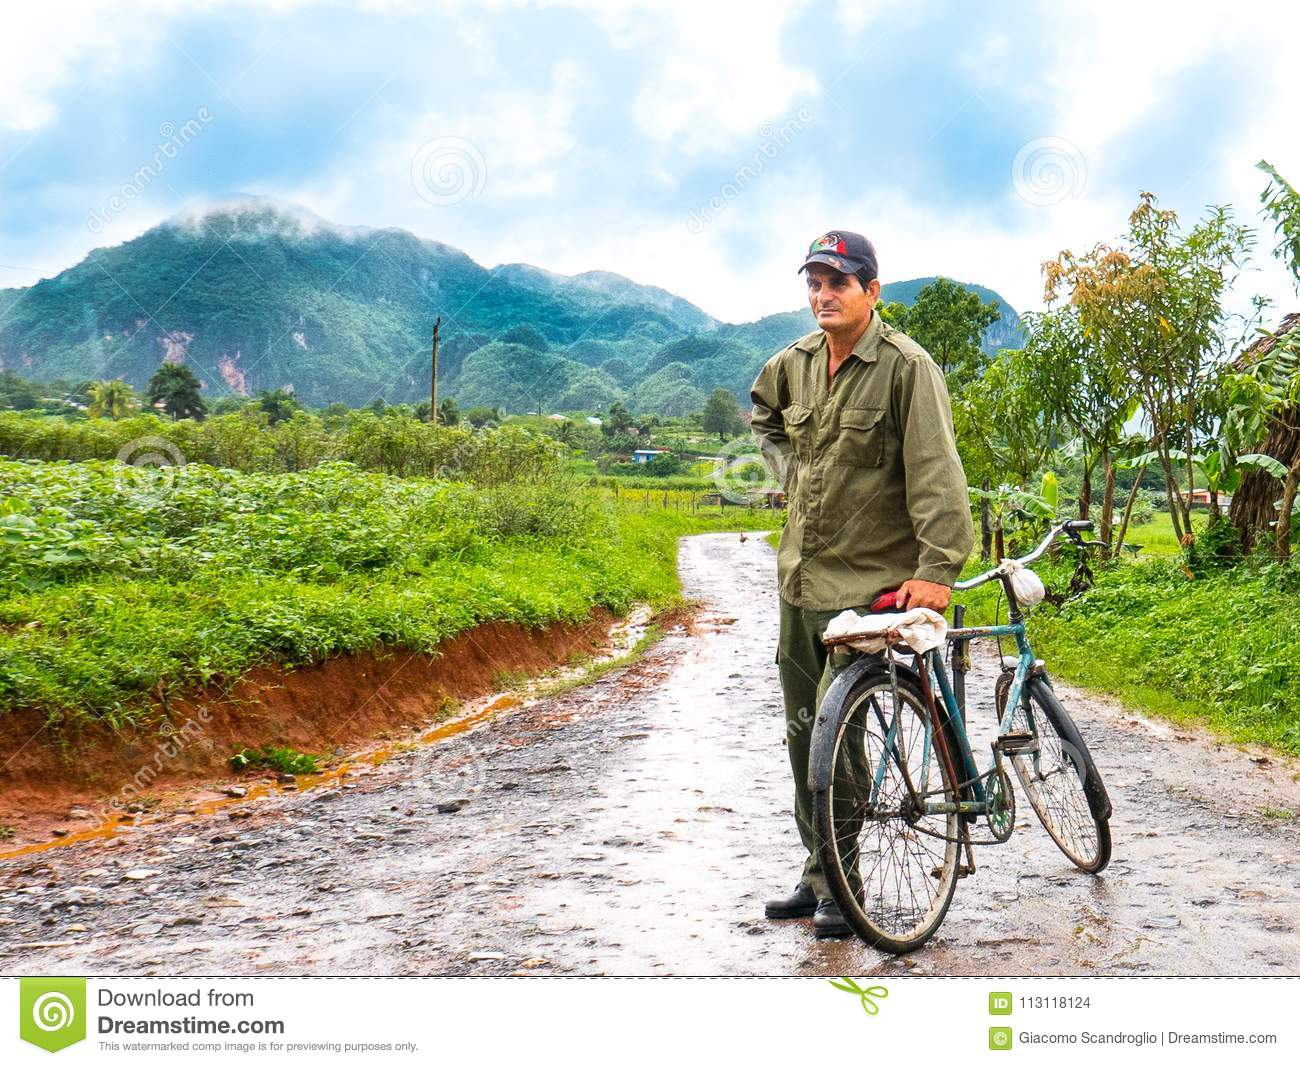 Vinales, Cuba. June 2016: Cuban man with bicycle, coming back from tobacco plantations, surrounded by green fields.